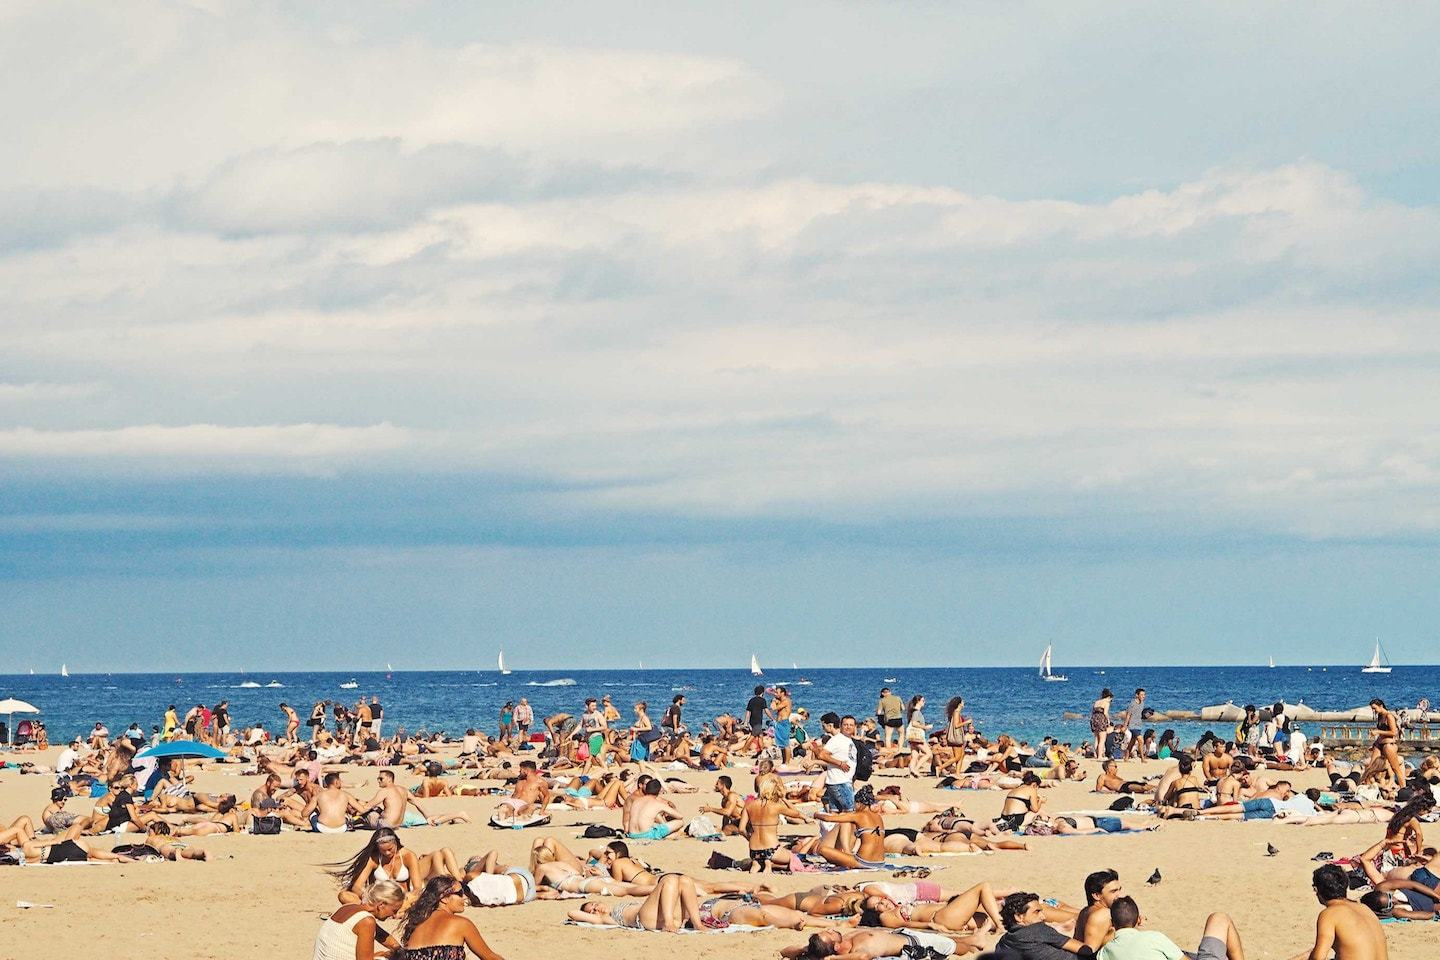 lots of people laying in the beach under blue sky